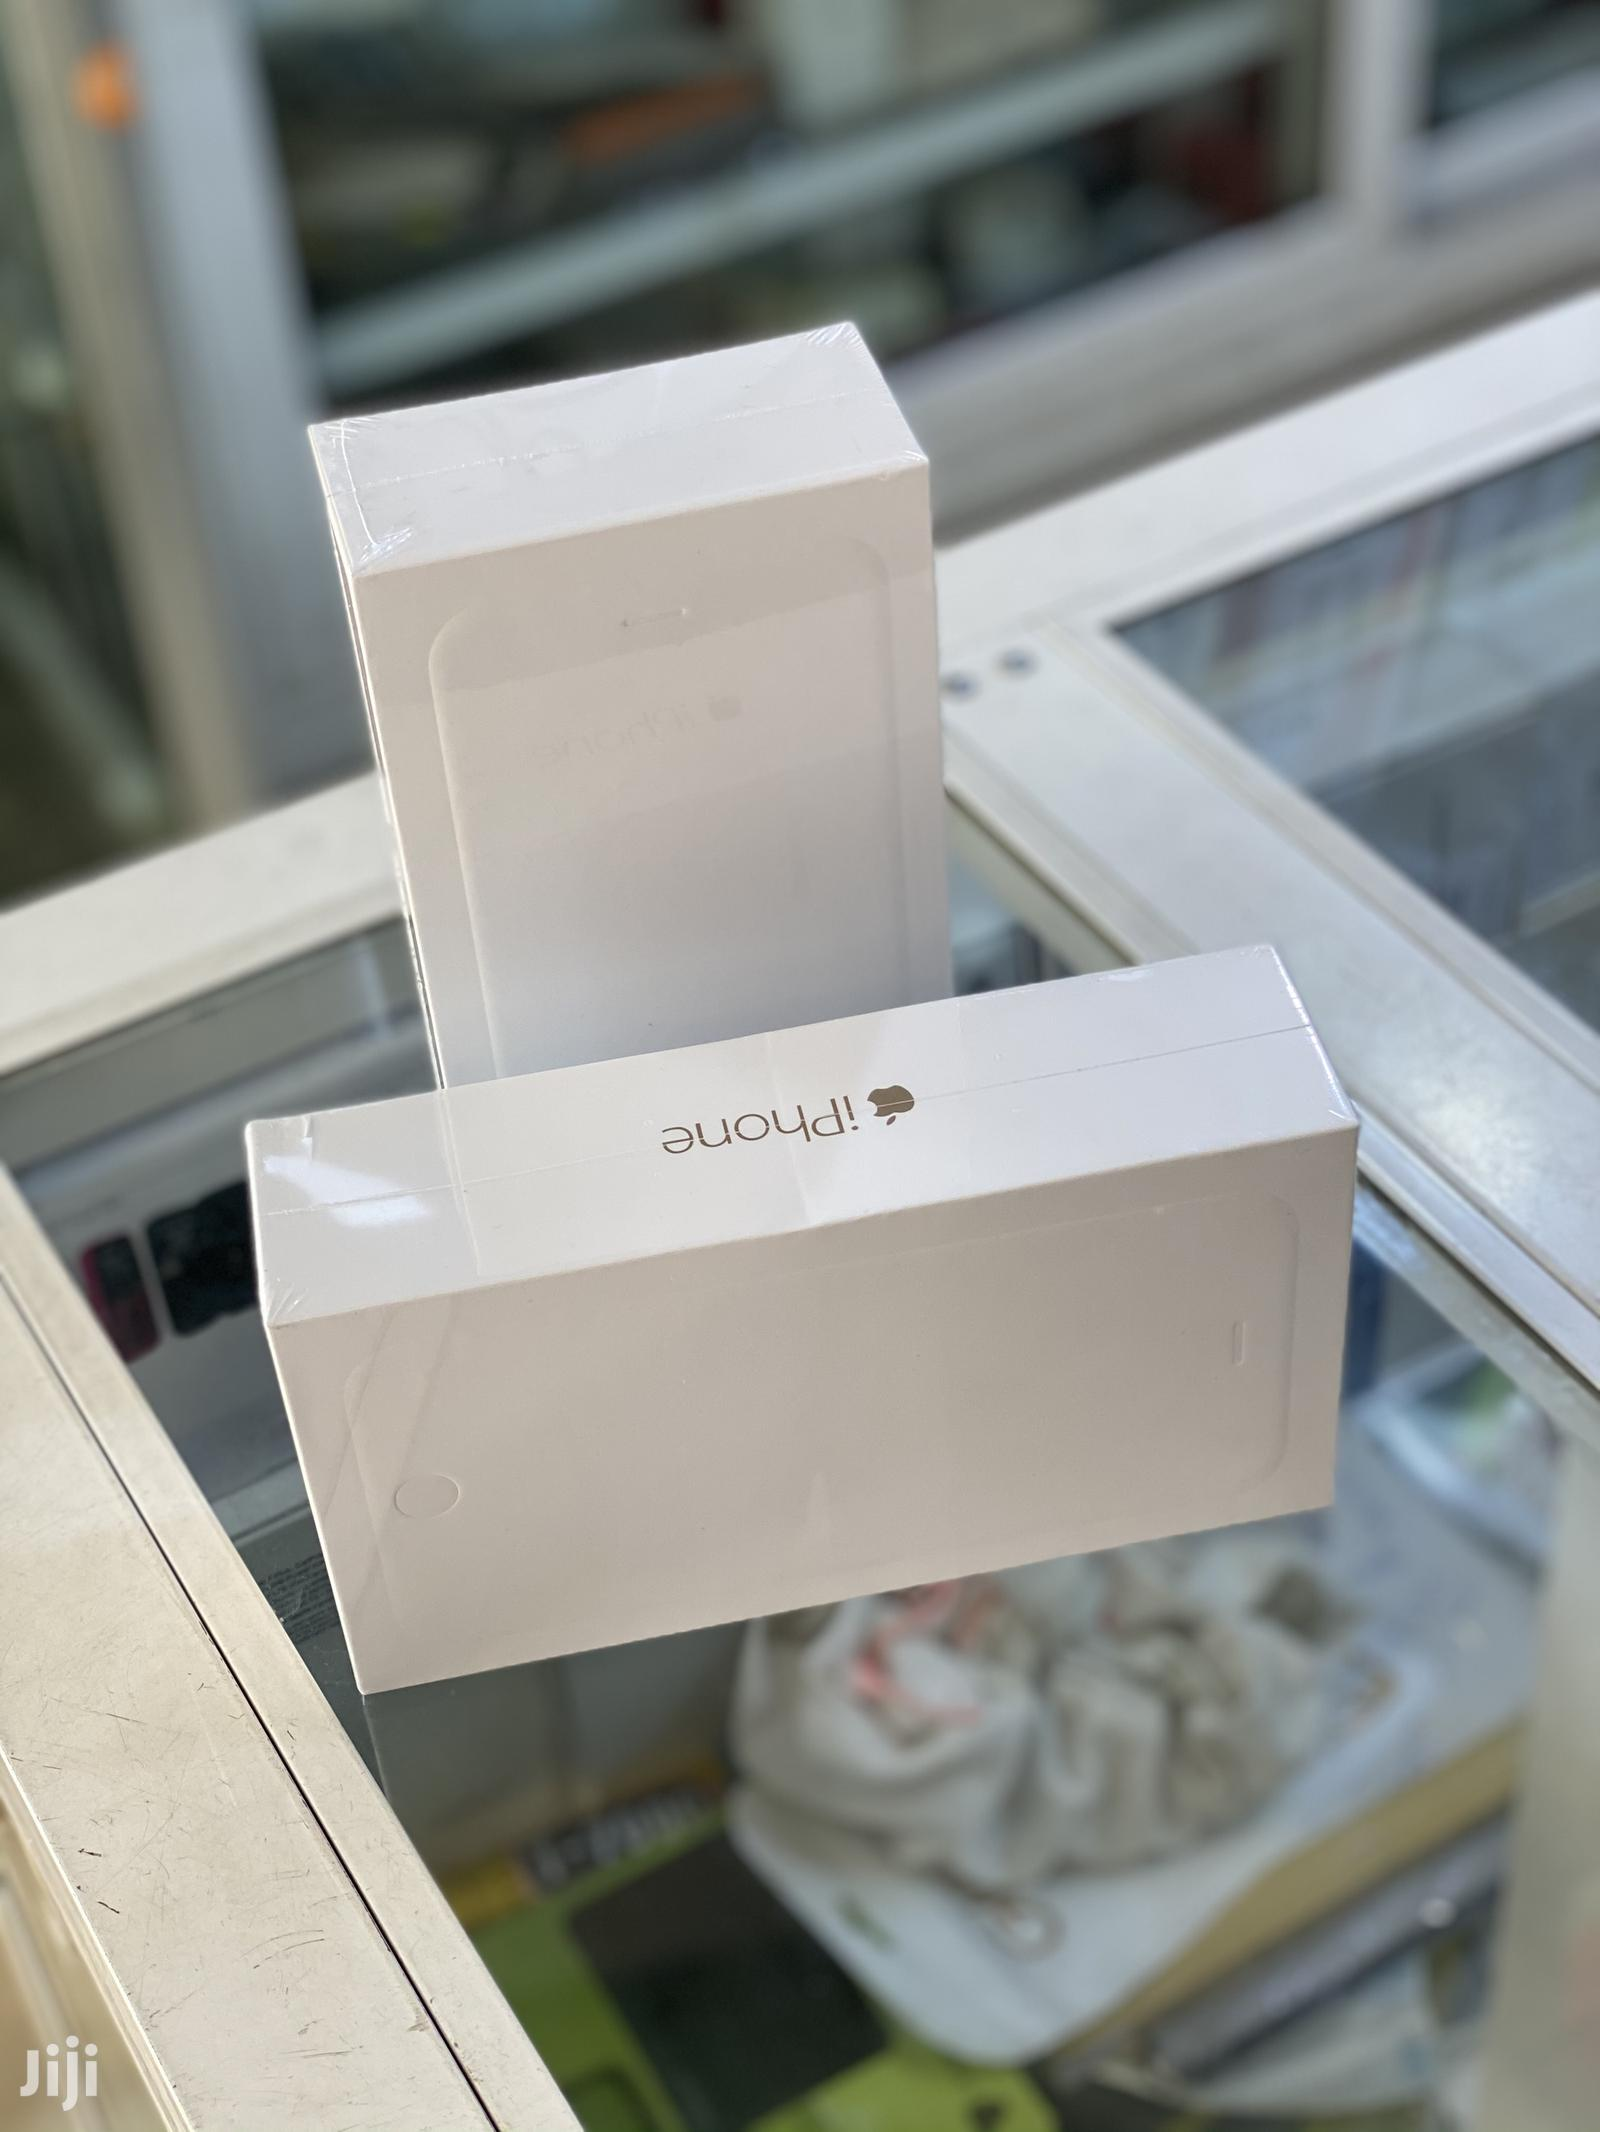 New Apple iPhone 6 Plus 64 GB | Mobile Phones for sale in Kokomlemle, Greater Accra, Ghana